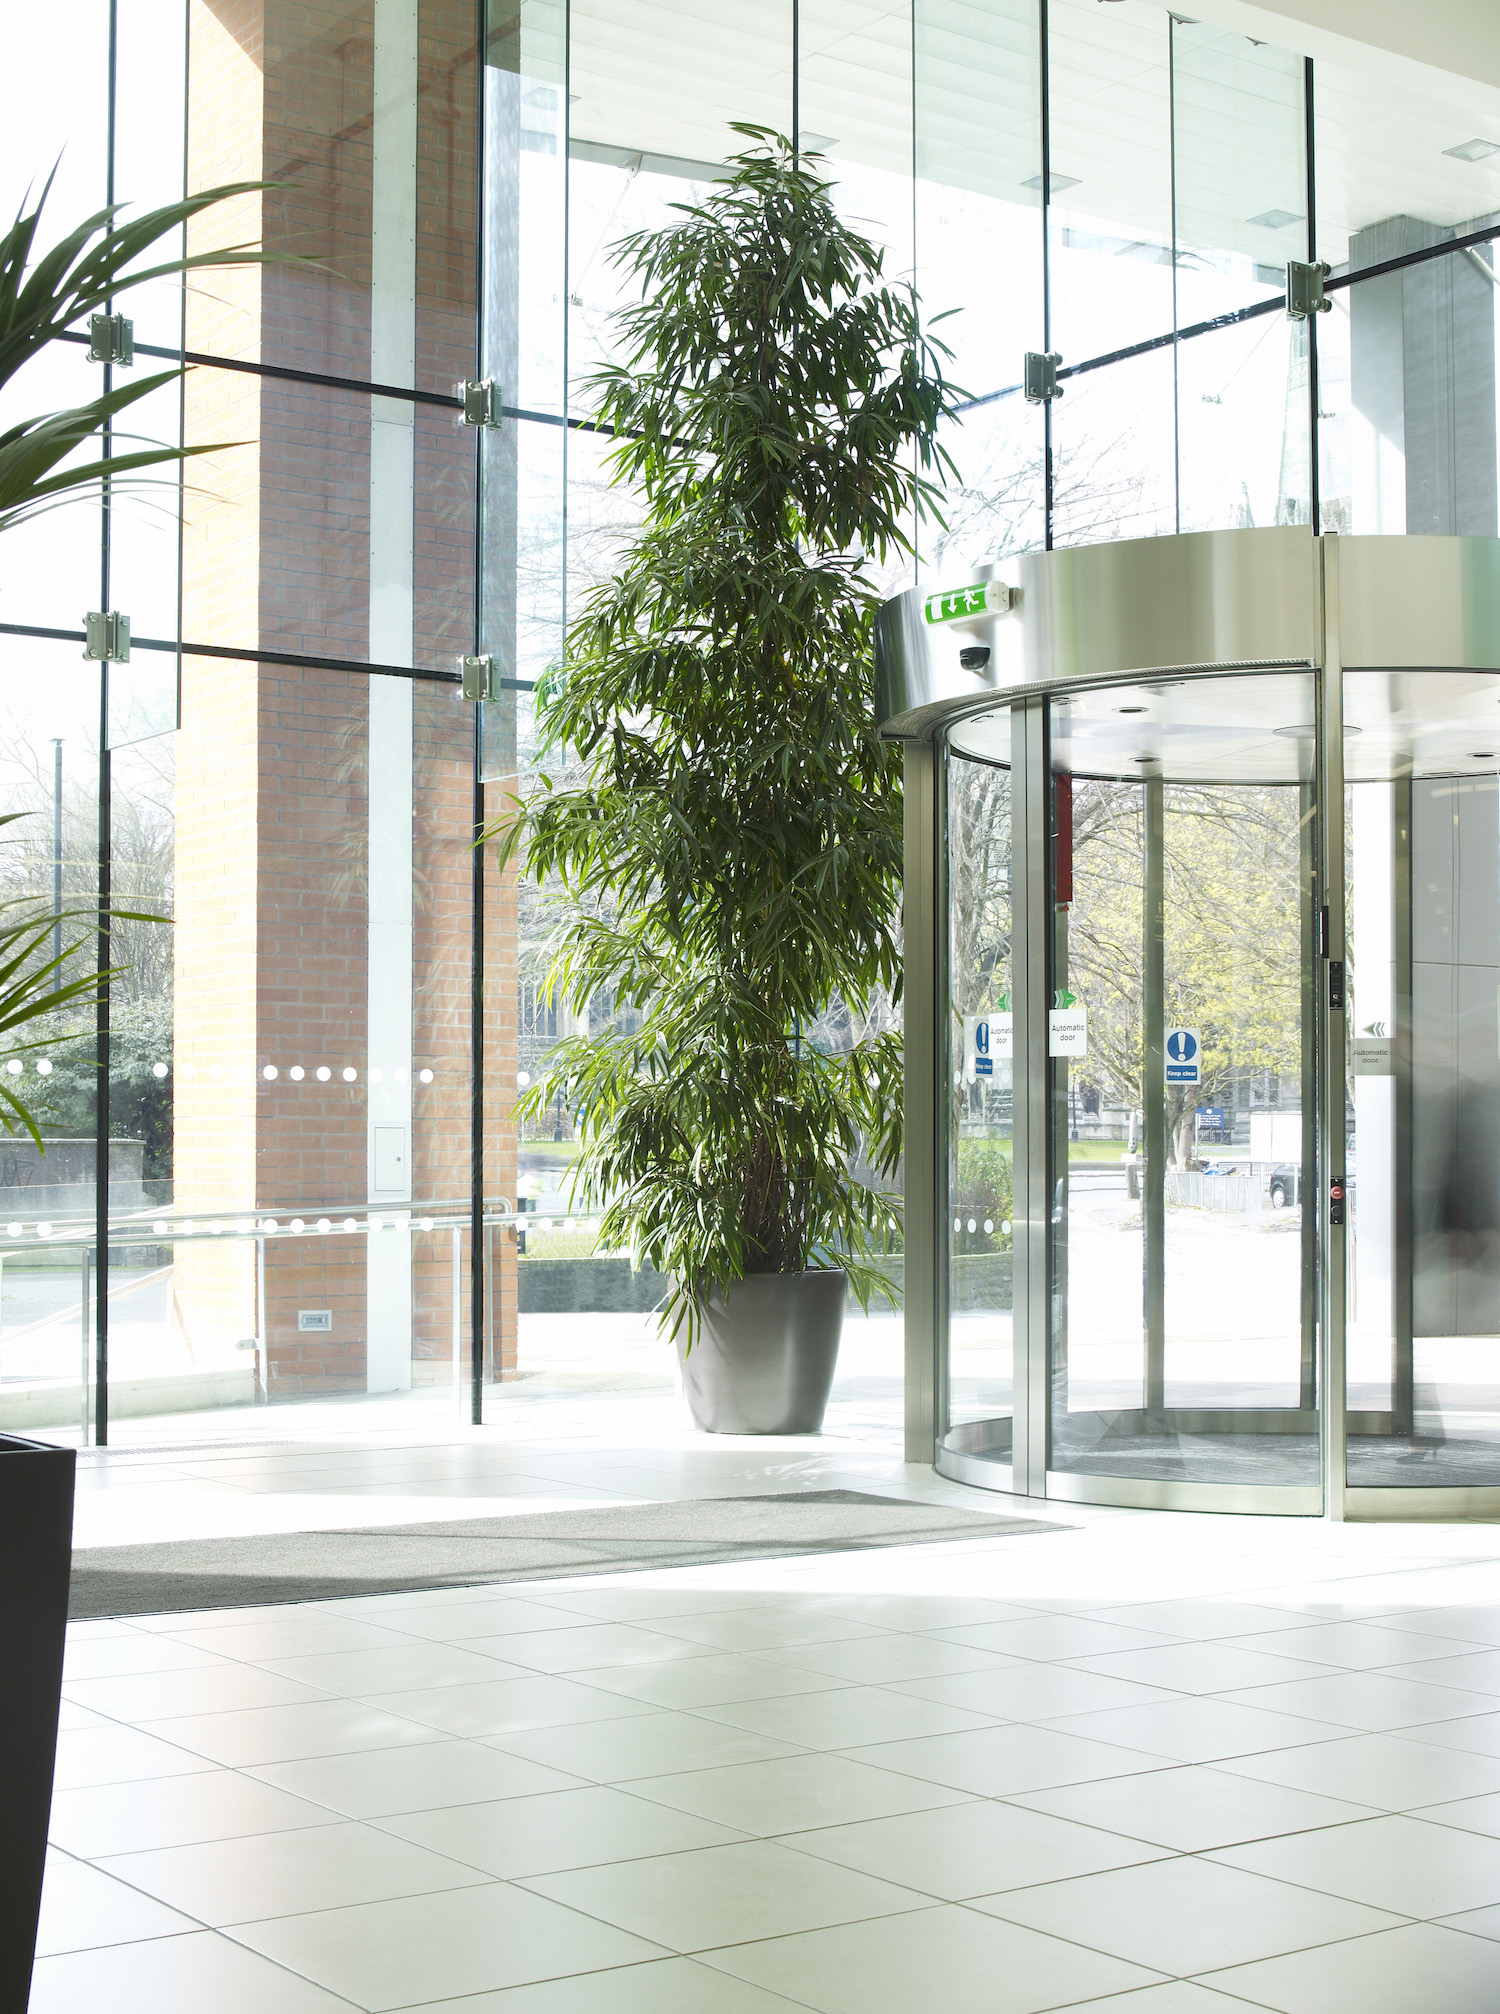 interior-trees-plantcare-bristol-cardiff-interiorscapes-eco-friendly-corporate-office-workspace-2